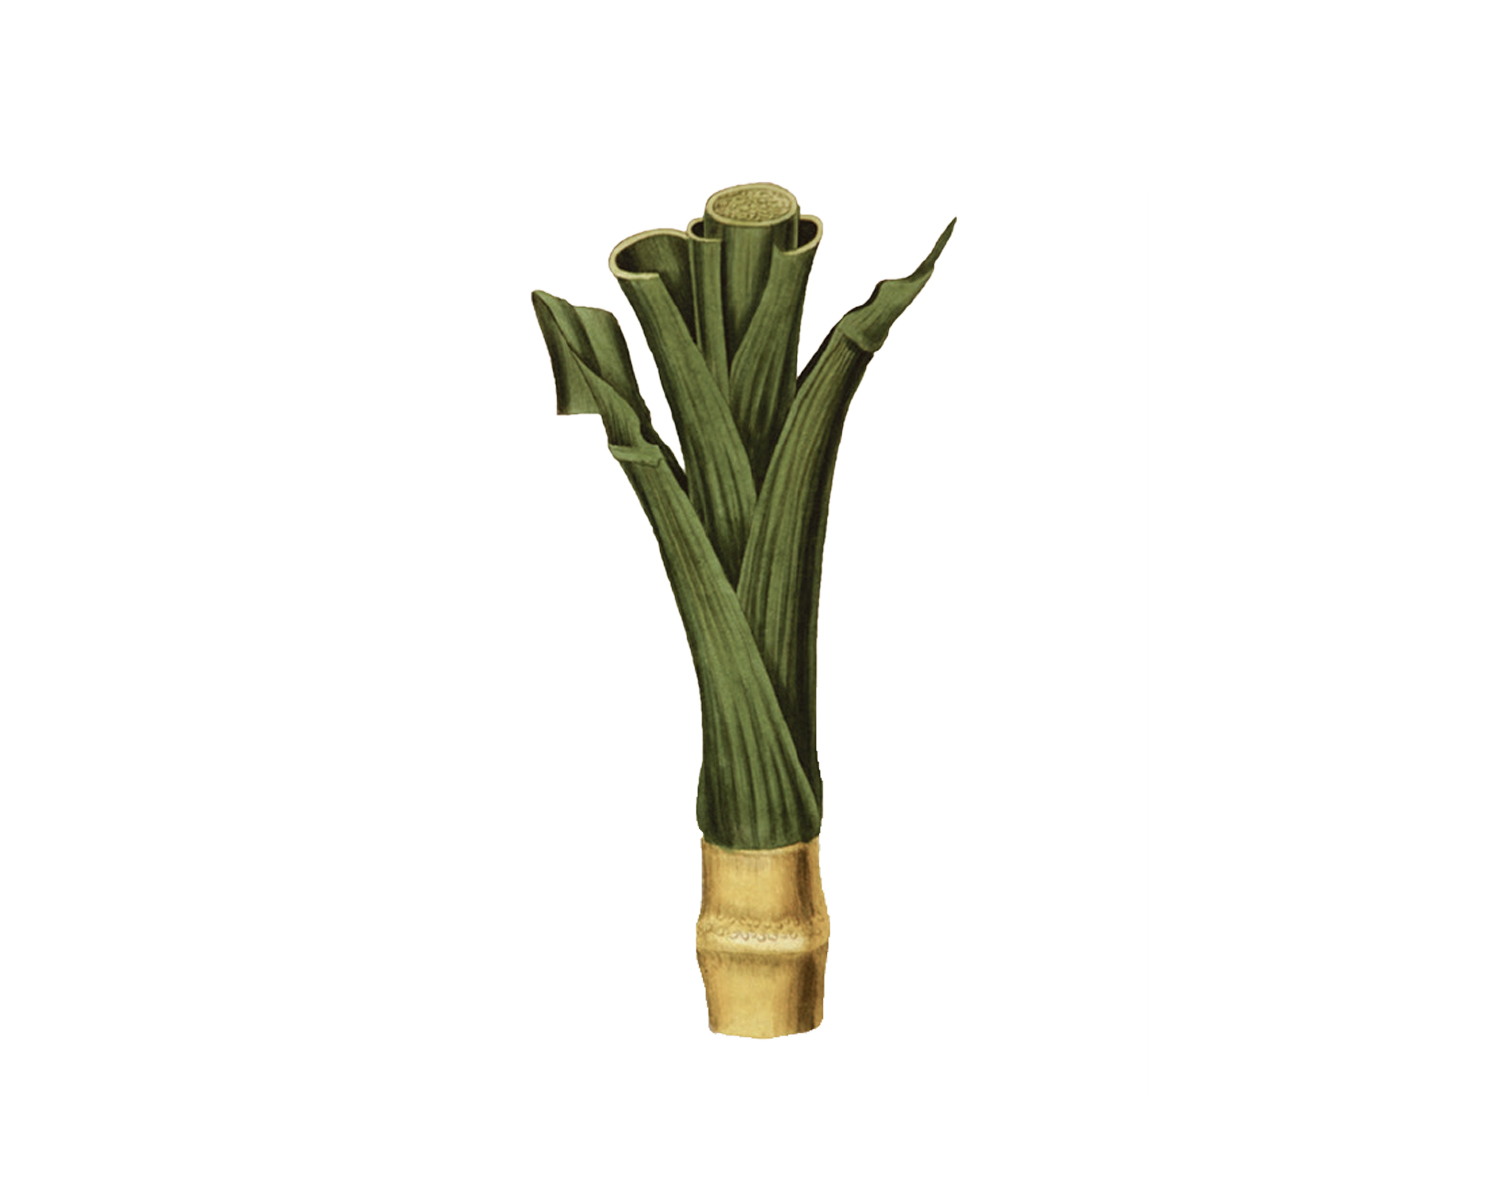 Saccharum O fficinarum  : The juice of the sugarcane was first extracted and concentrated in India 2,000 years ago. It was brought to the Americas by the Spaniards in the 17th Century.